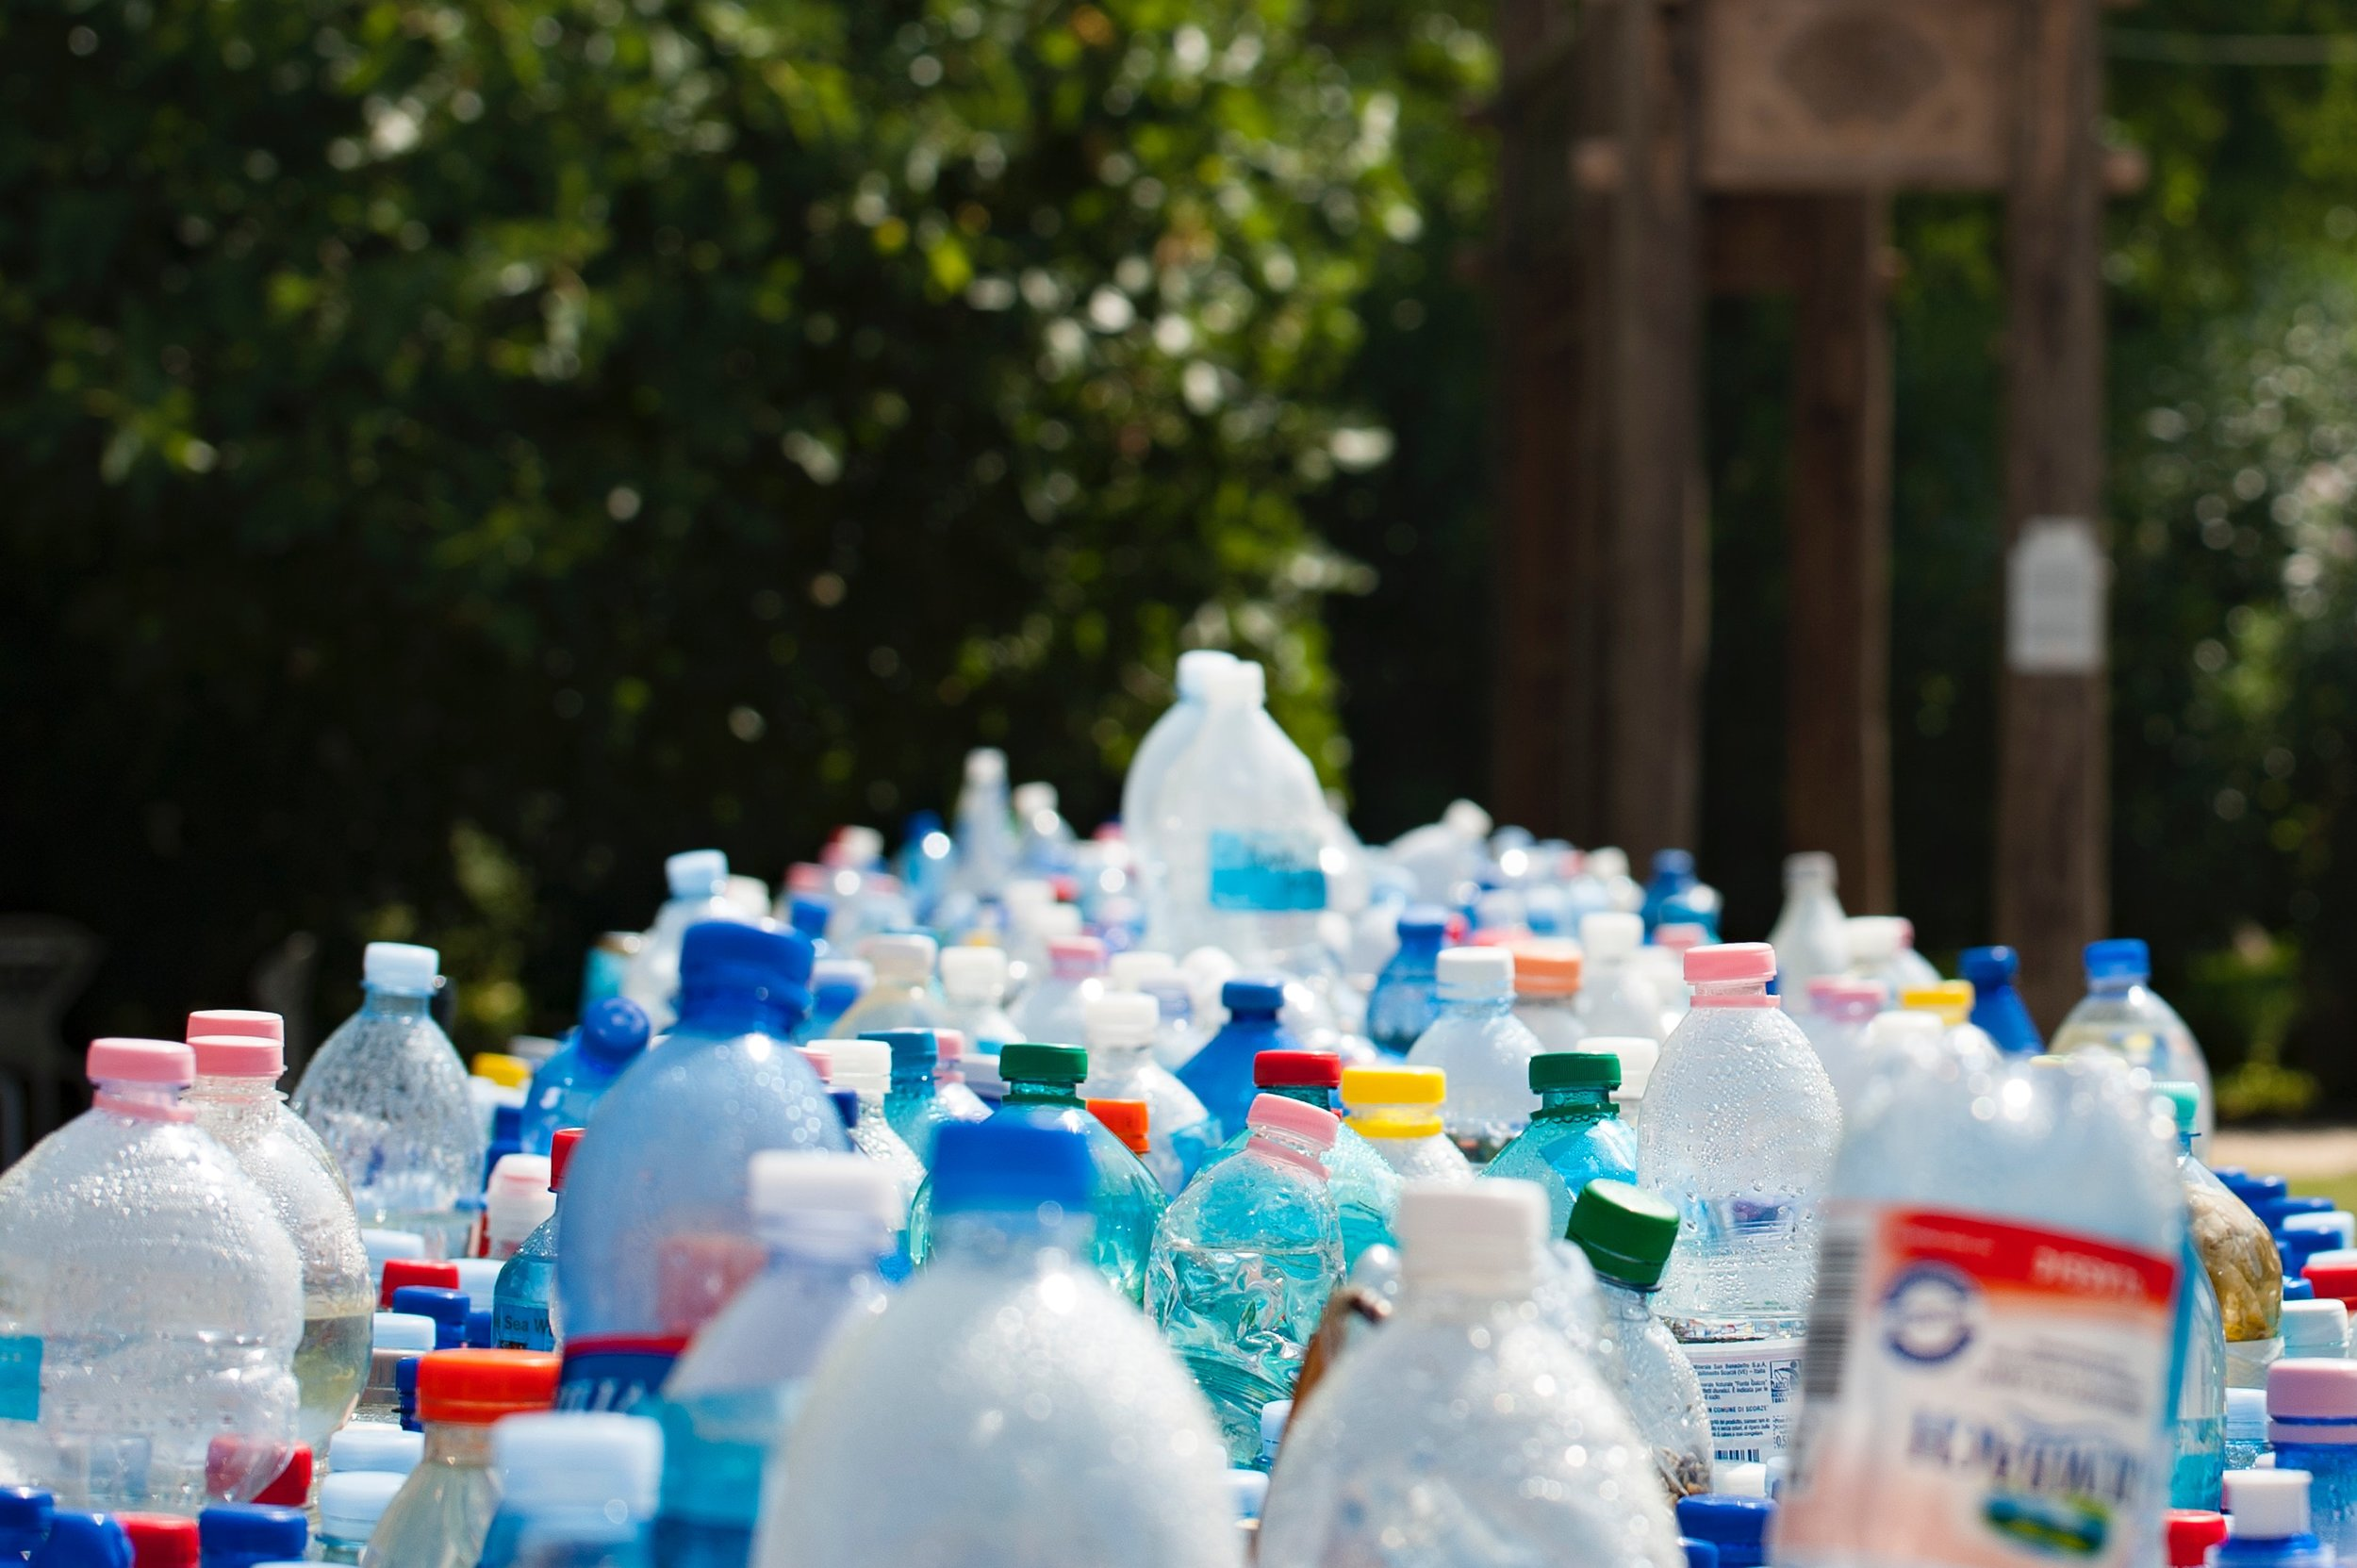 Reducing waste can be tackled in many ways. Eliminating bottled drinks and composting are two major strategies.